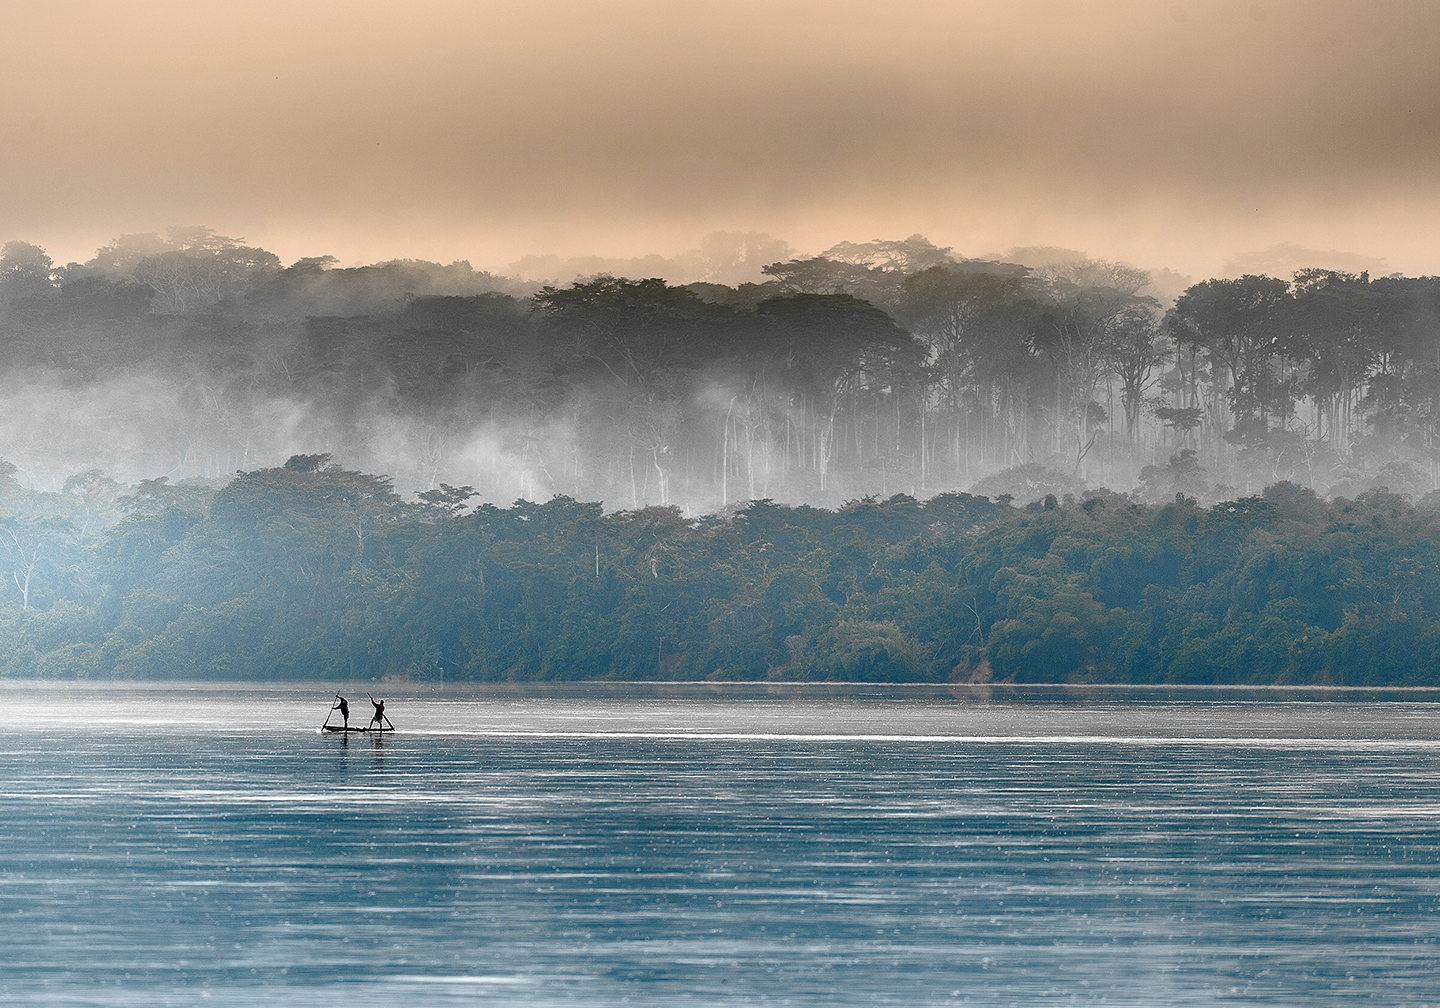 Two fishermen in the distance on the Congo River, with trees and sky behind them